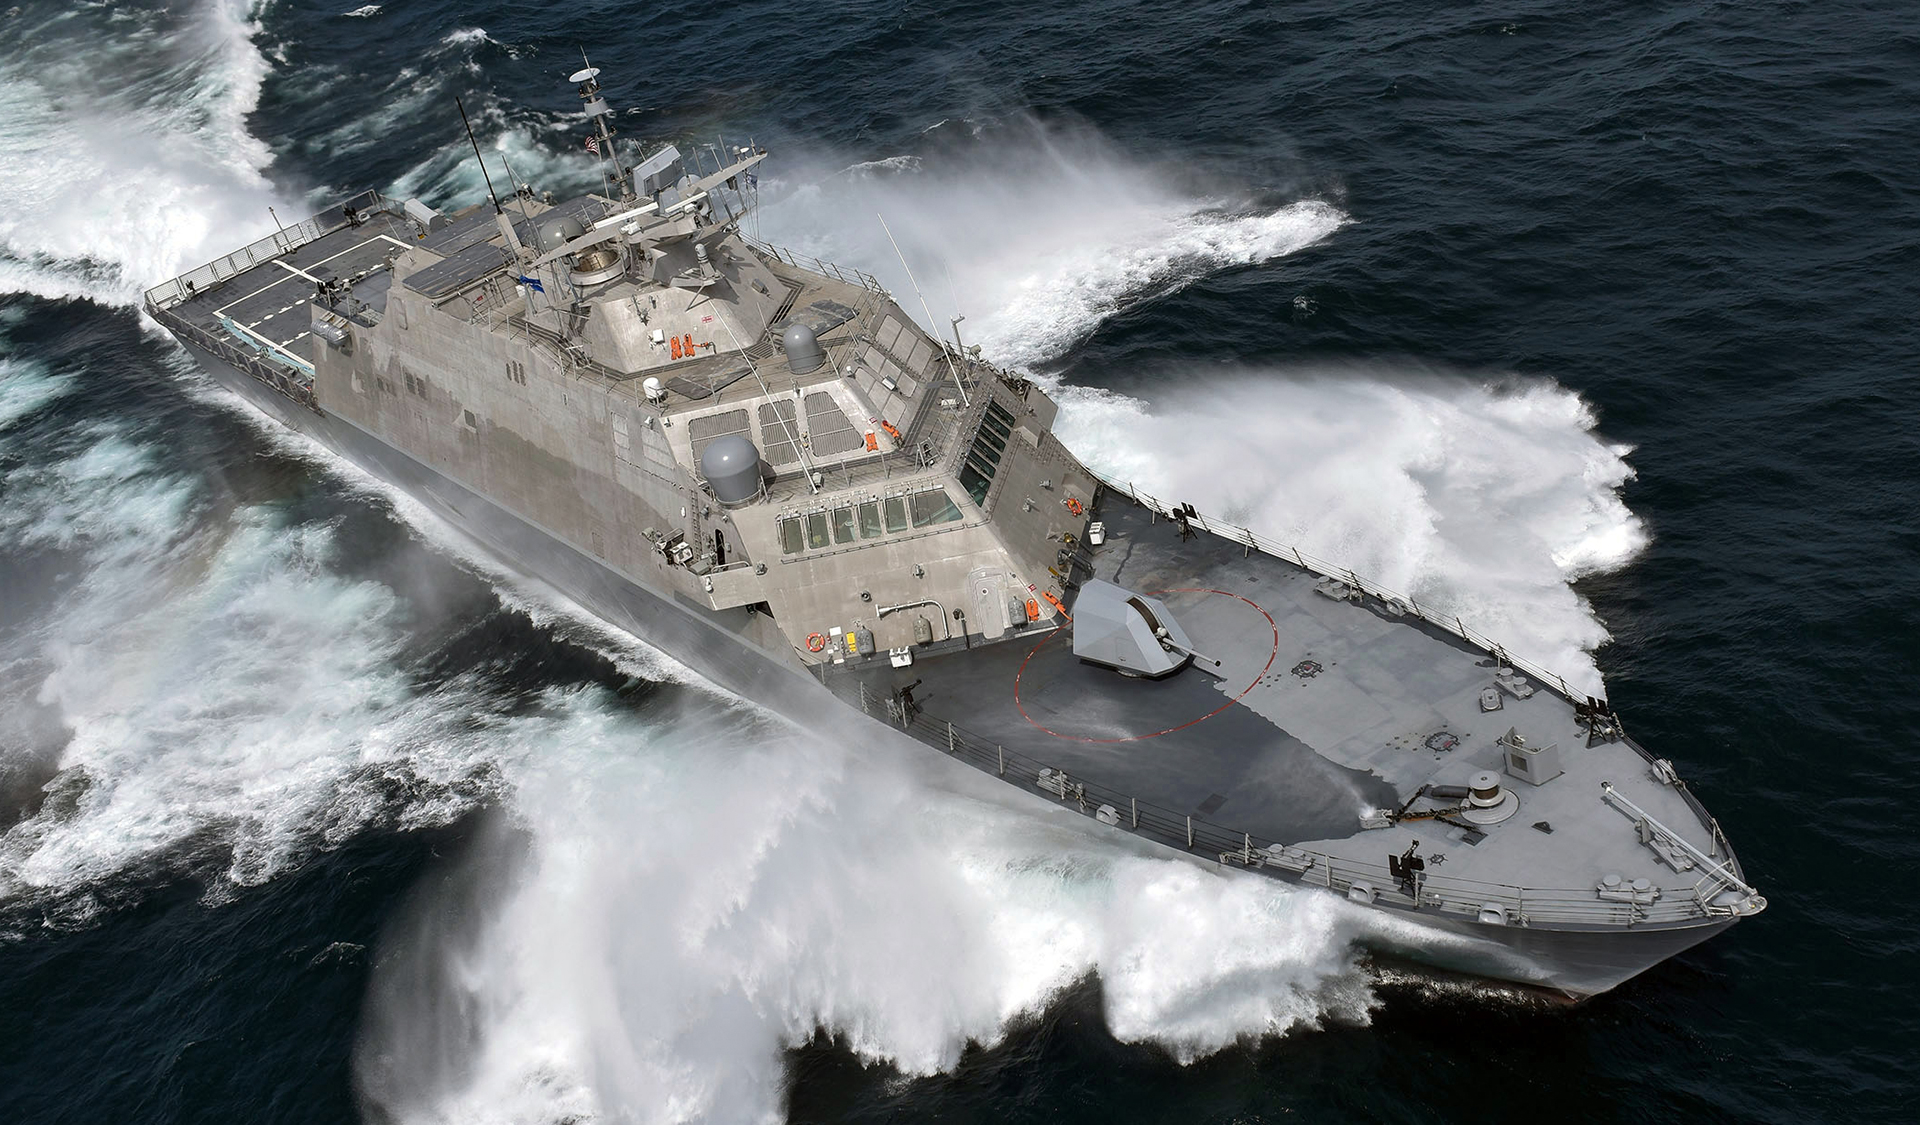 Lockheed Martin Freedom class (littoral combat ship program)